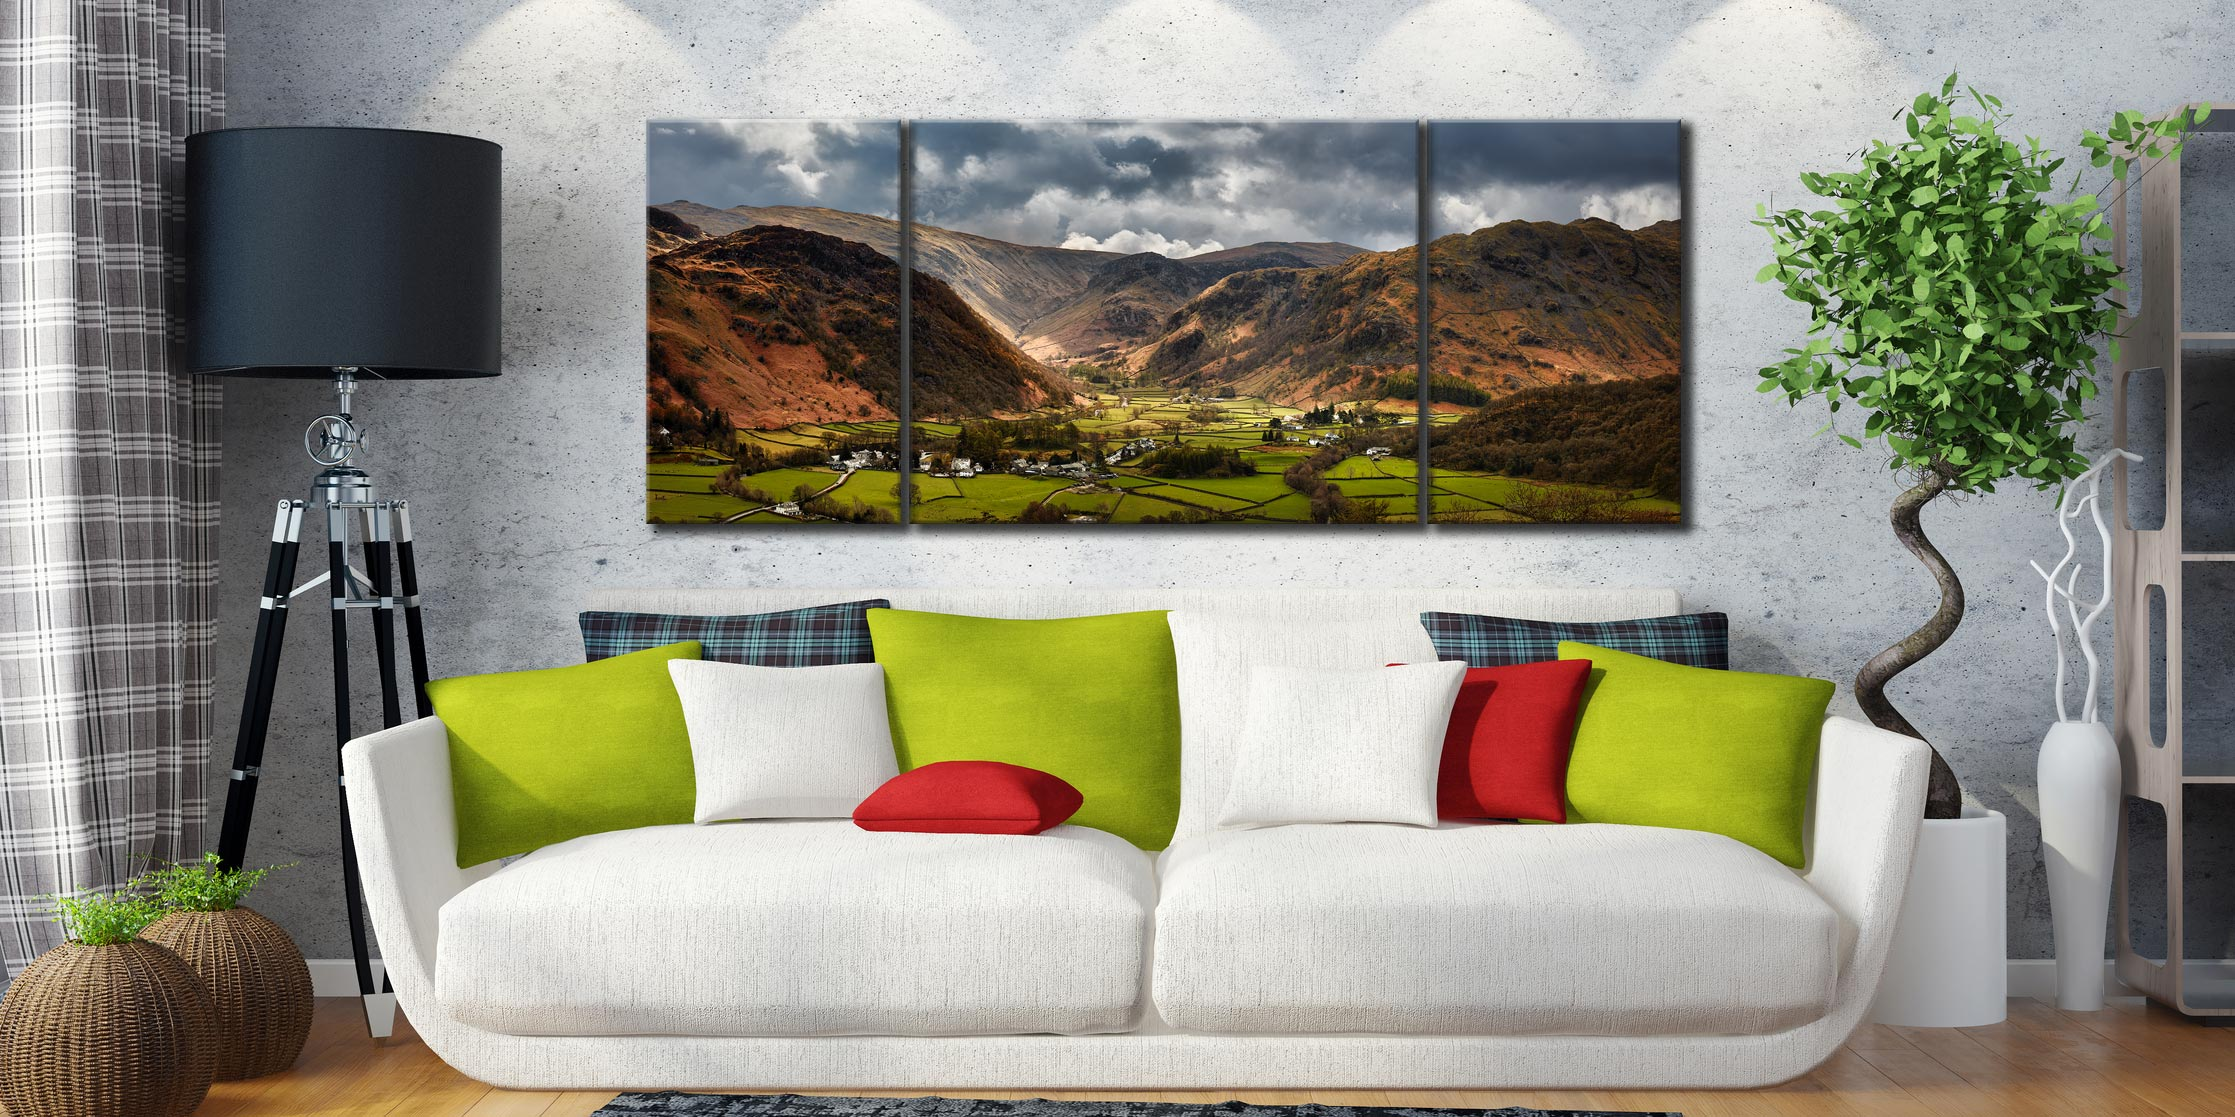 Borrowdale Pastures - 3 Panel Wide Mid Canvas on Wall